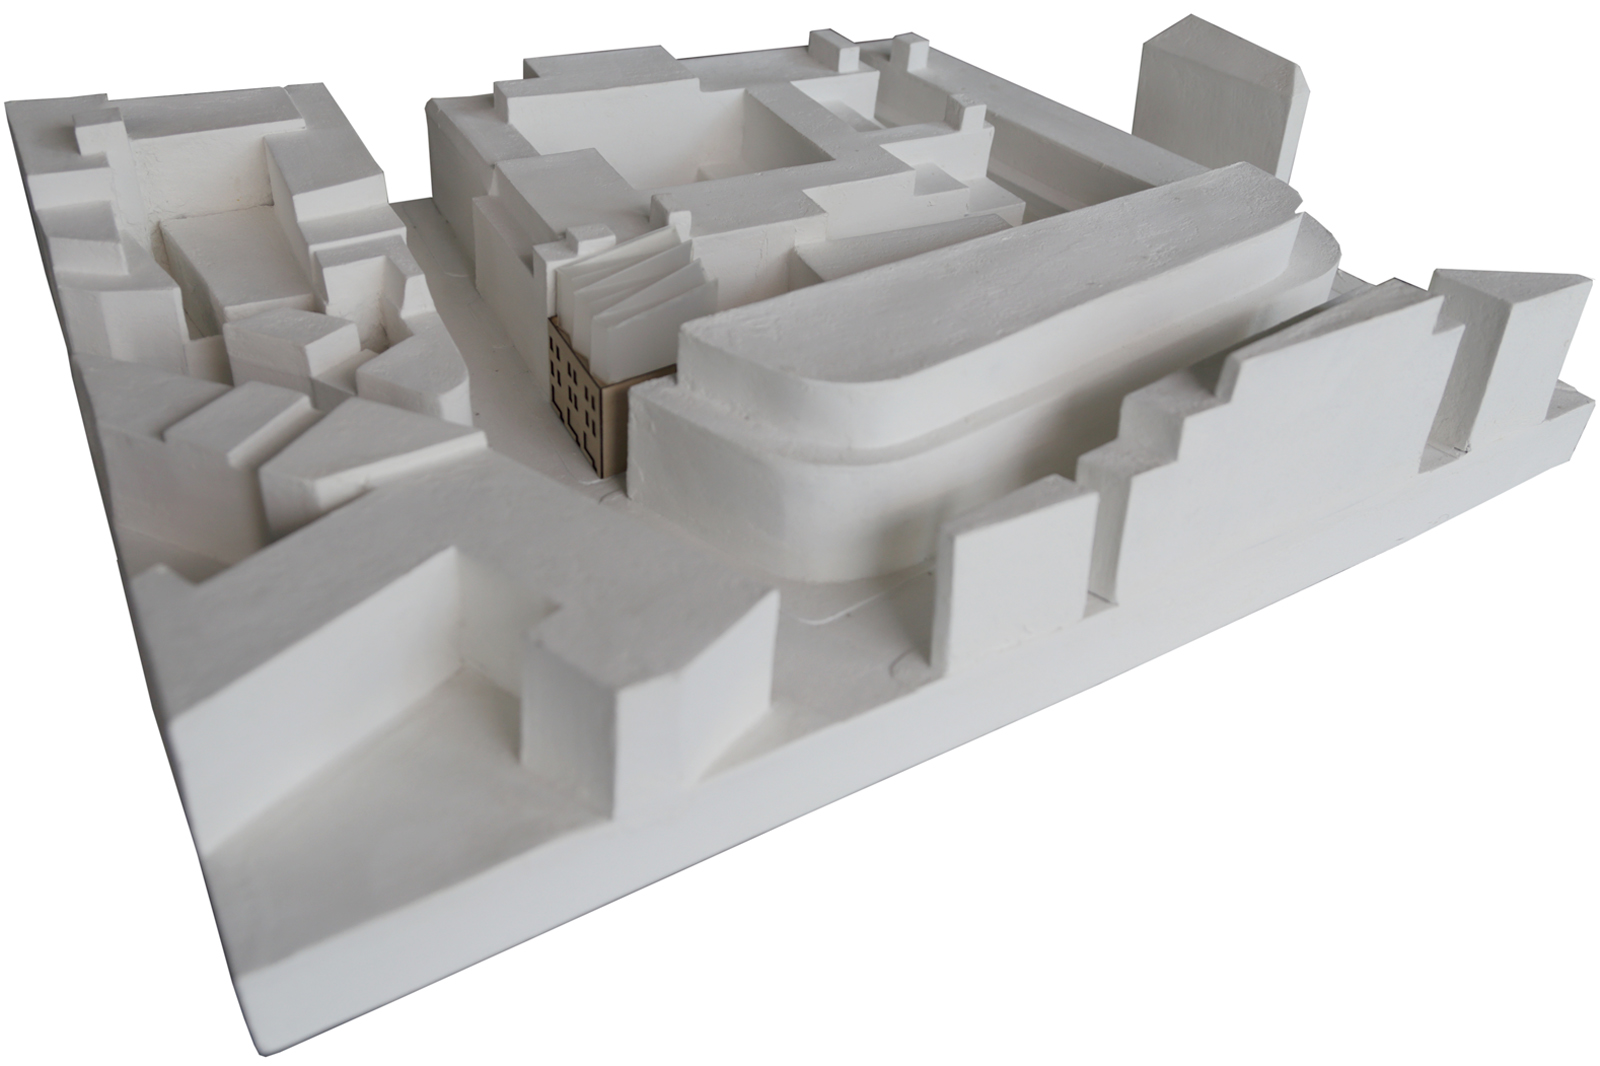 Srutton Street, design model